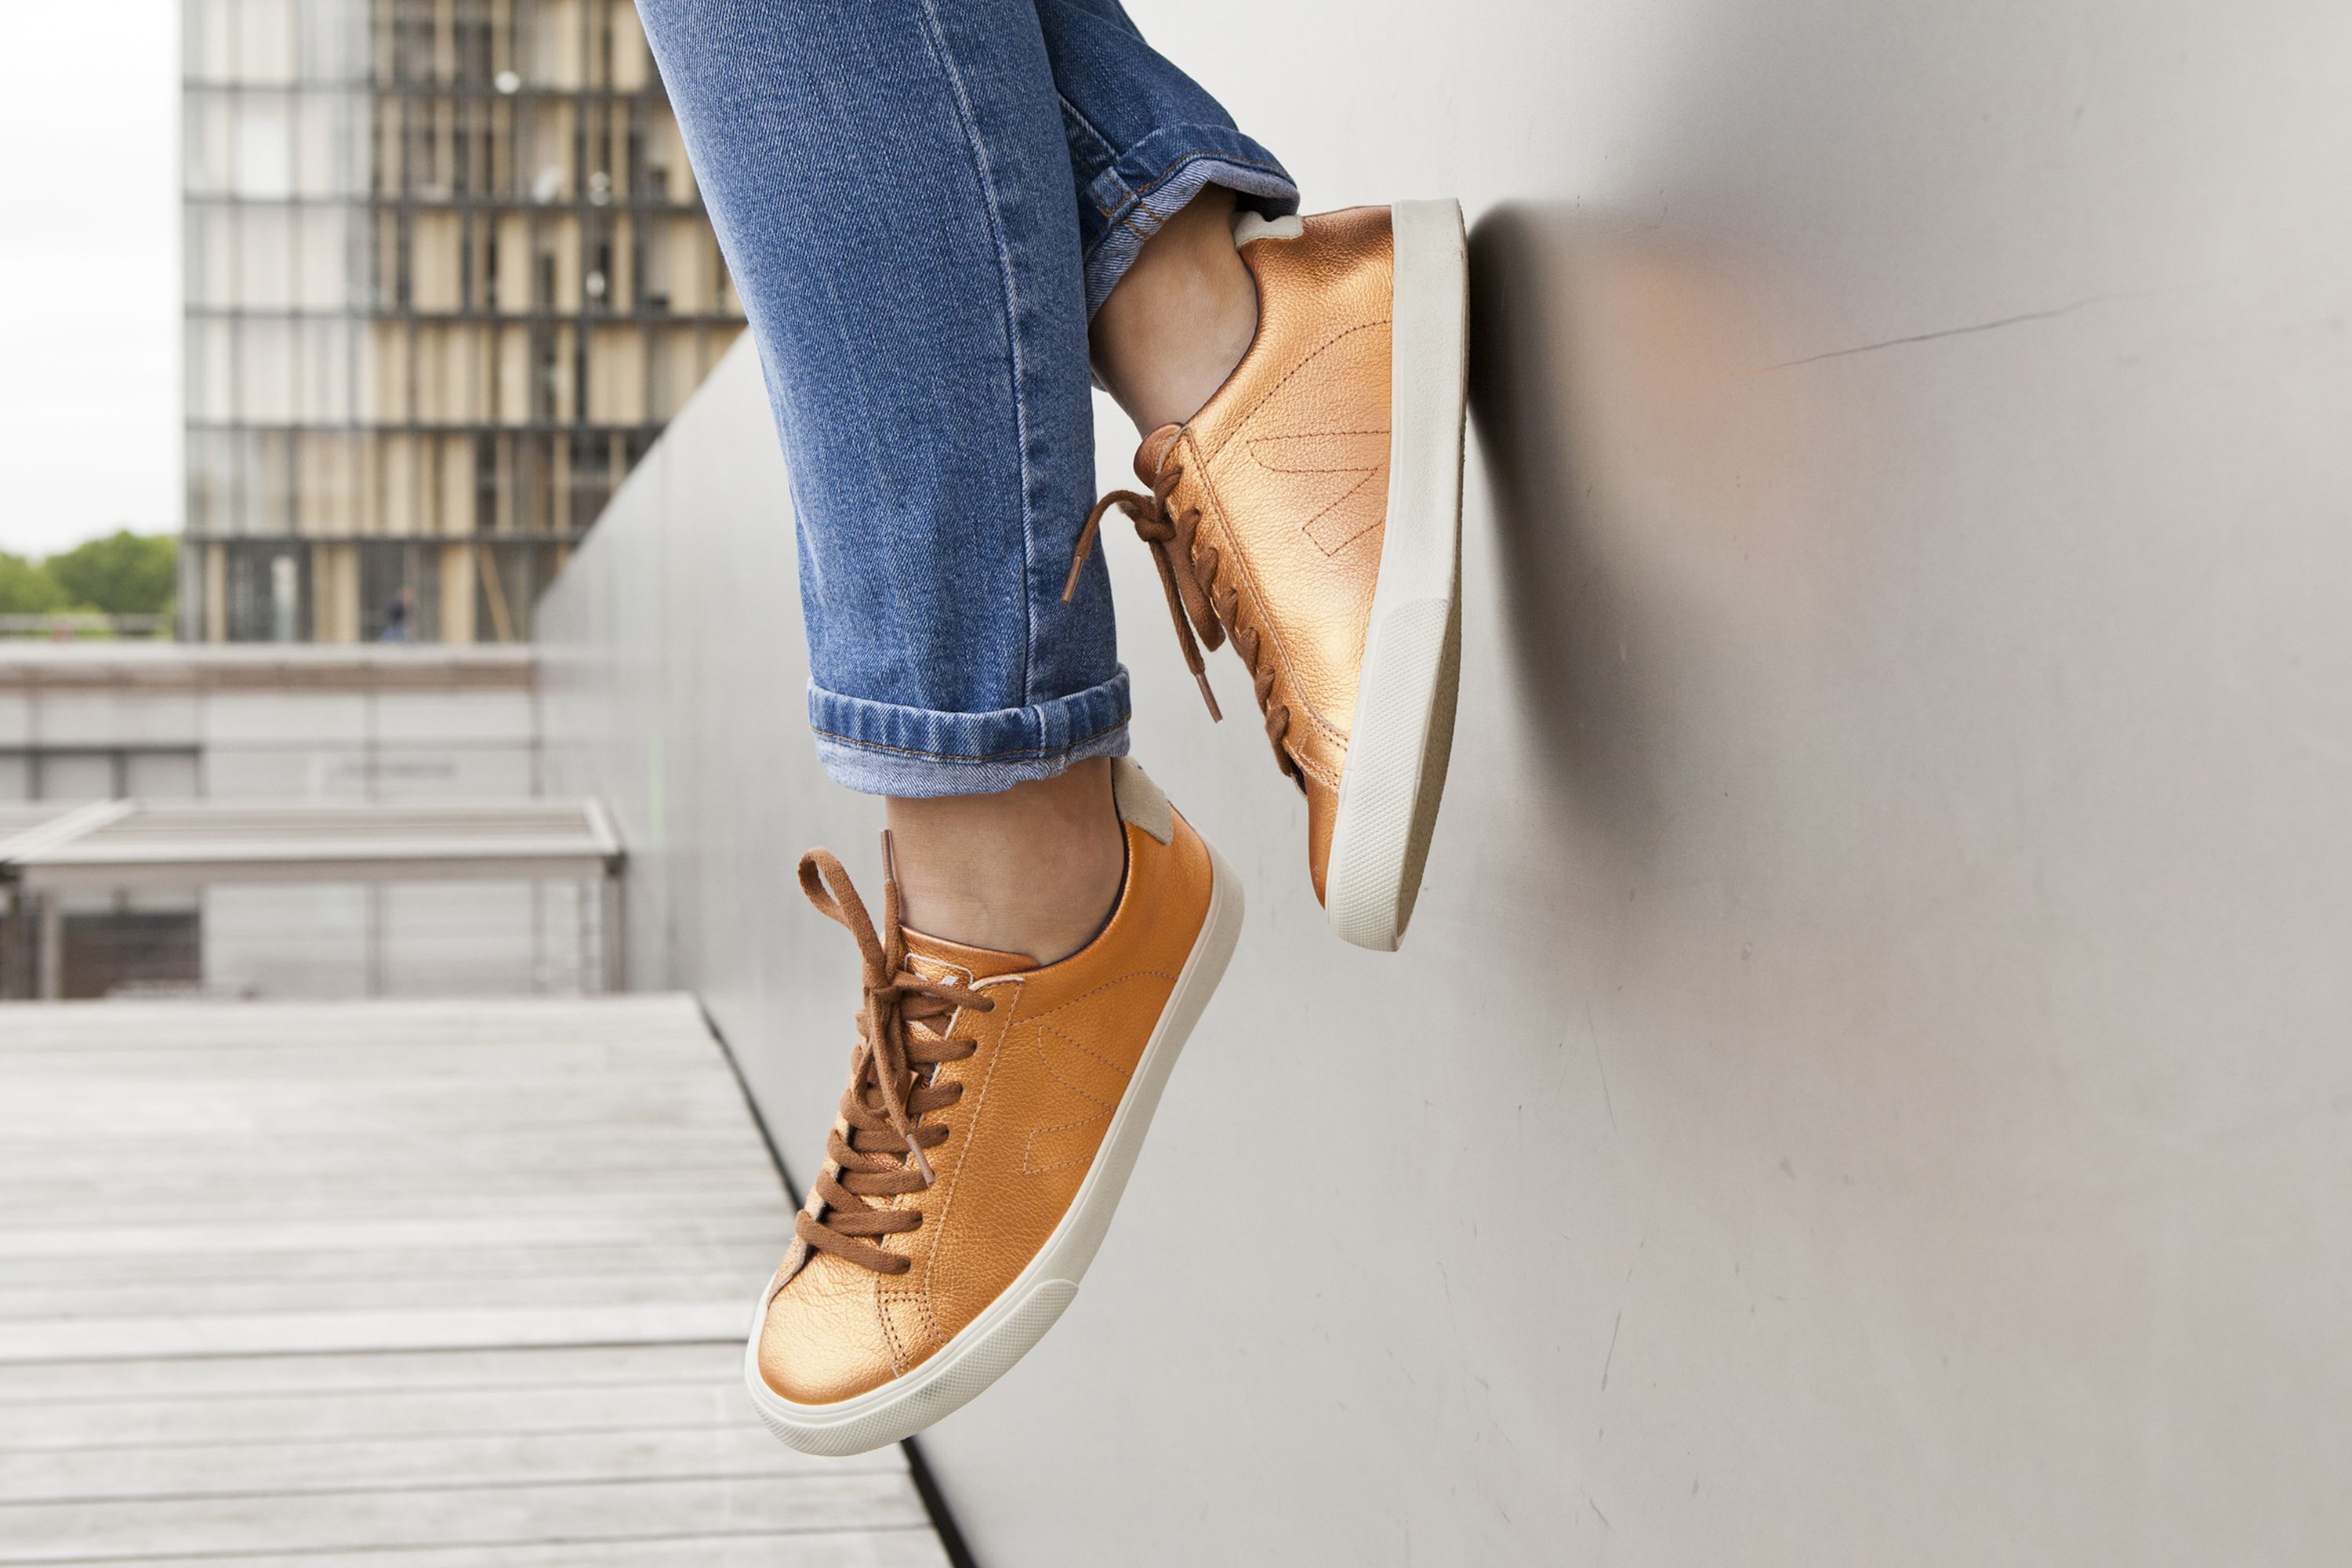 VEJA Esplar leather copper. Available on veja.fr #veja #vejashoes #copperkicks